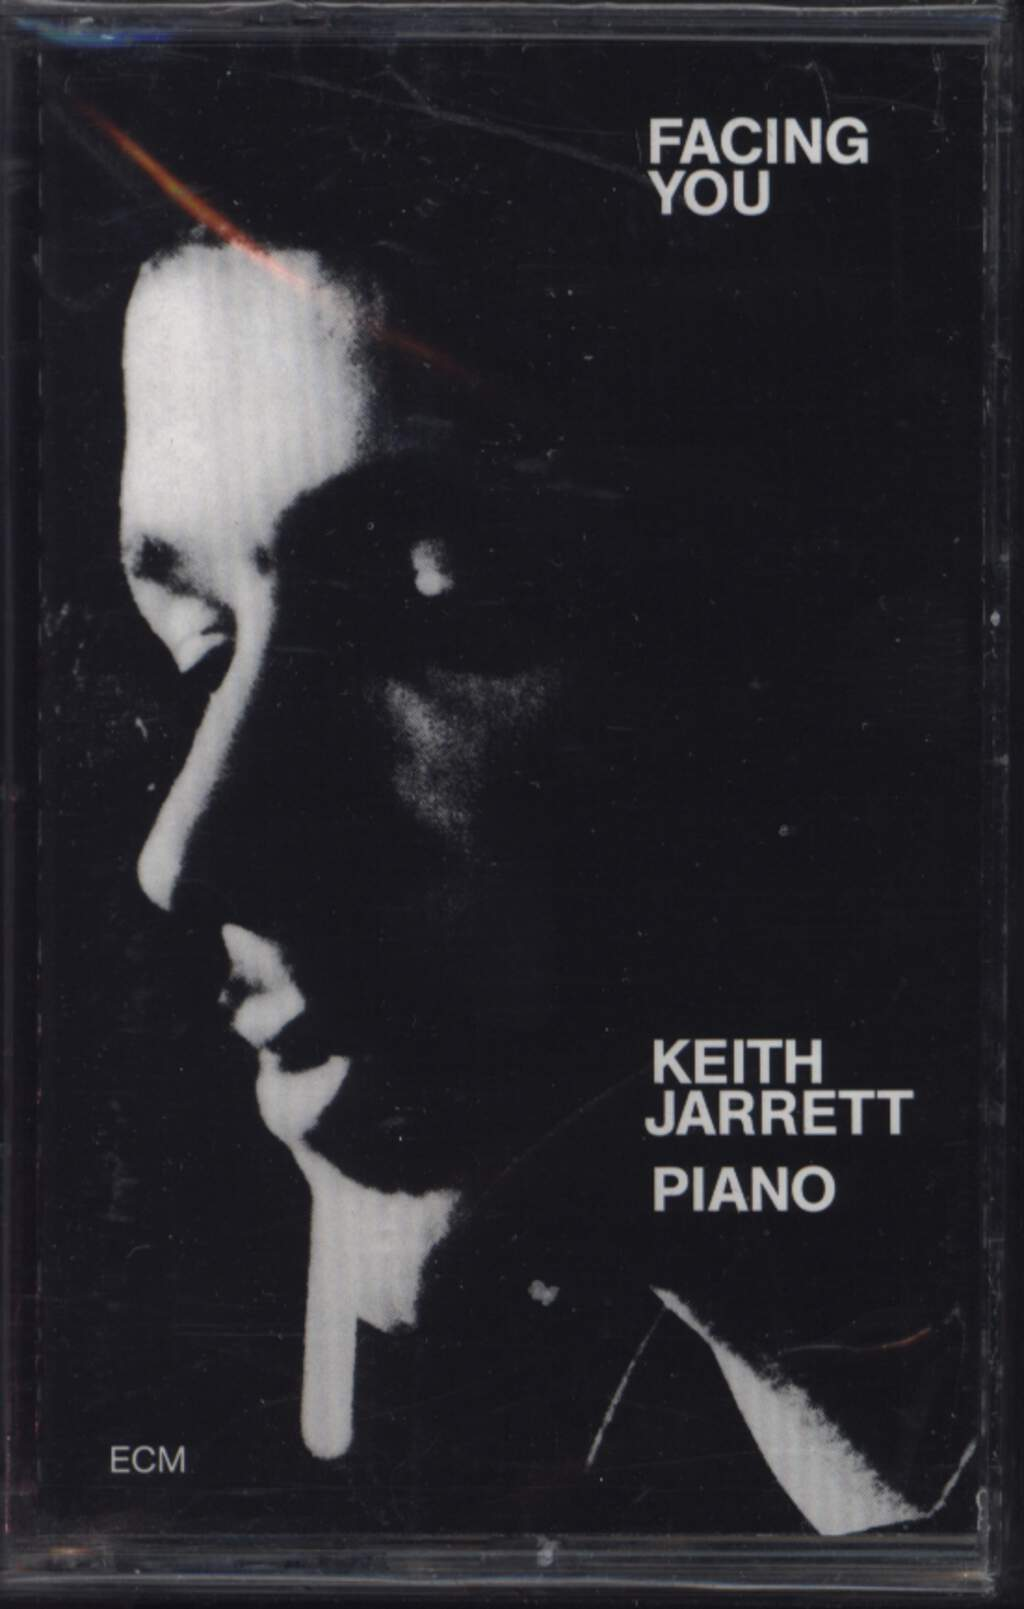 Keith Jarrett: Facing You, Compact Cassette